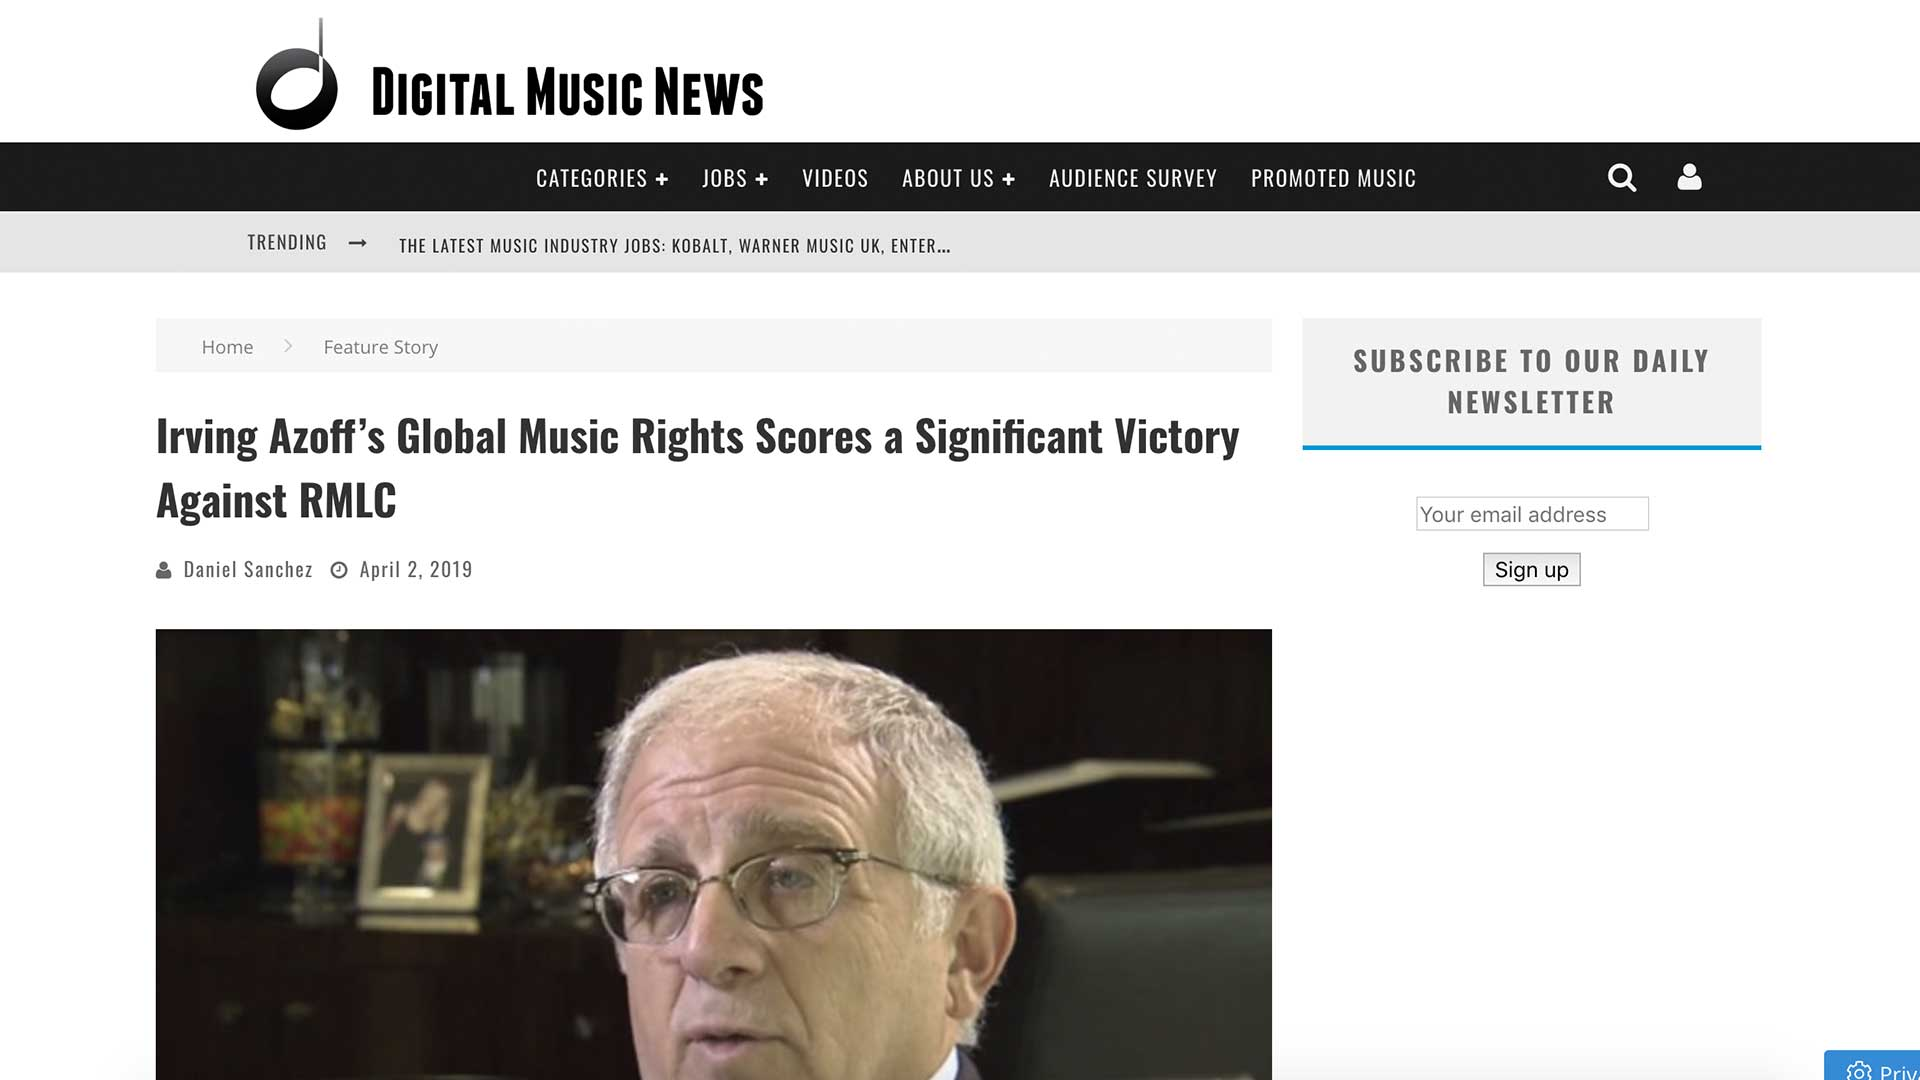 Fairness Rocks News Irving Azoff's Global Music Rights Scores a Significant Victory Against RMLC